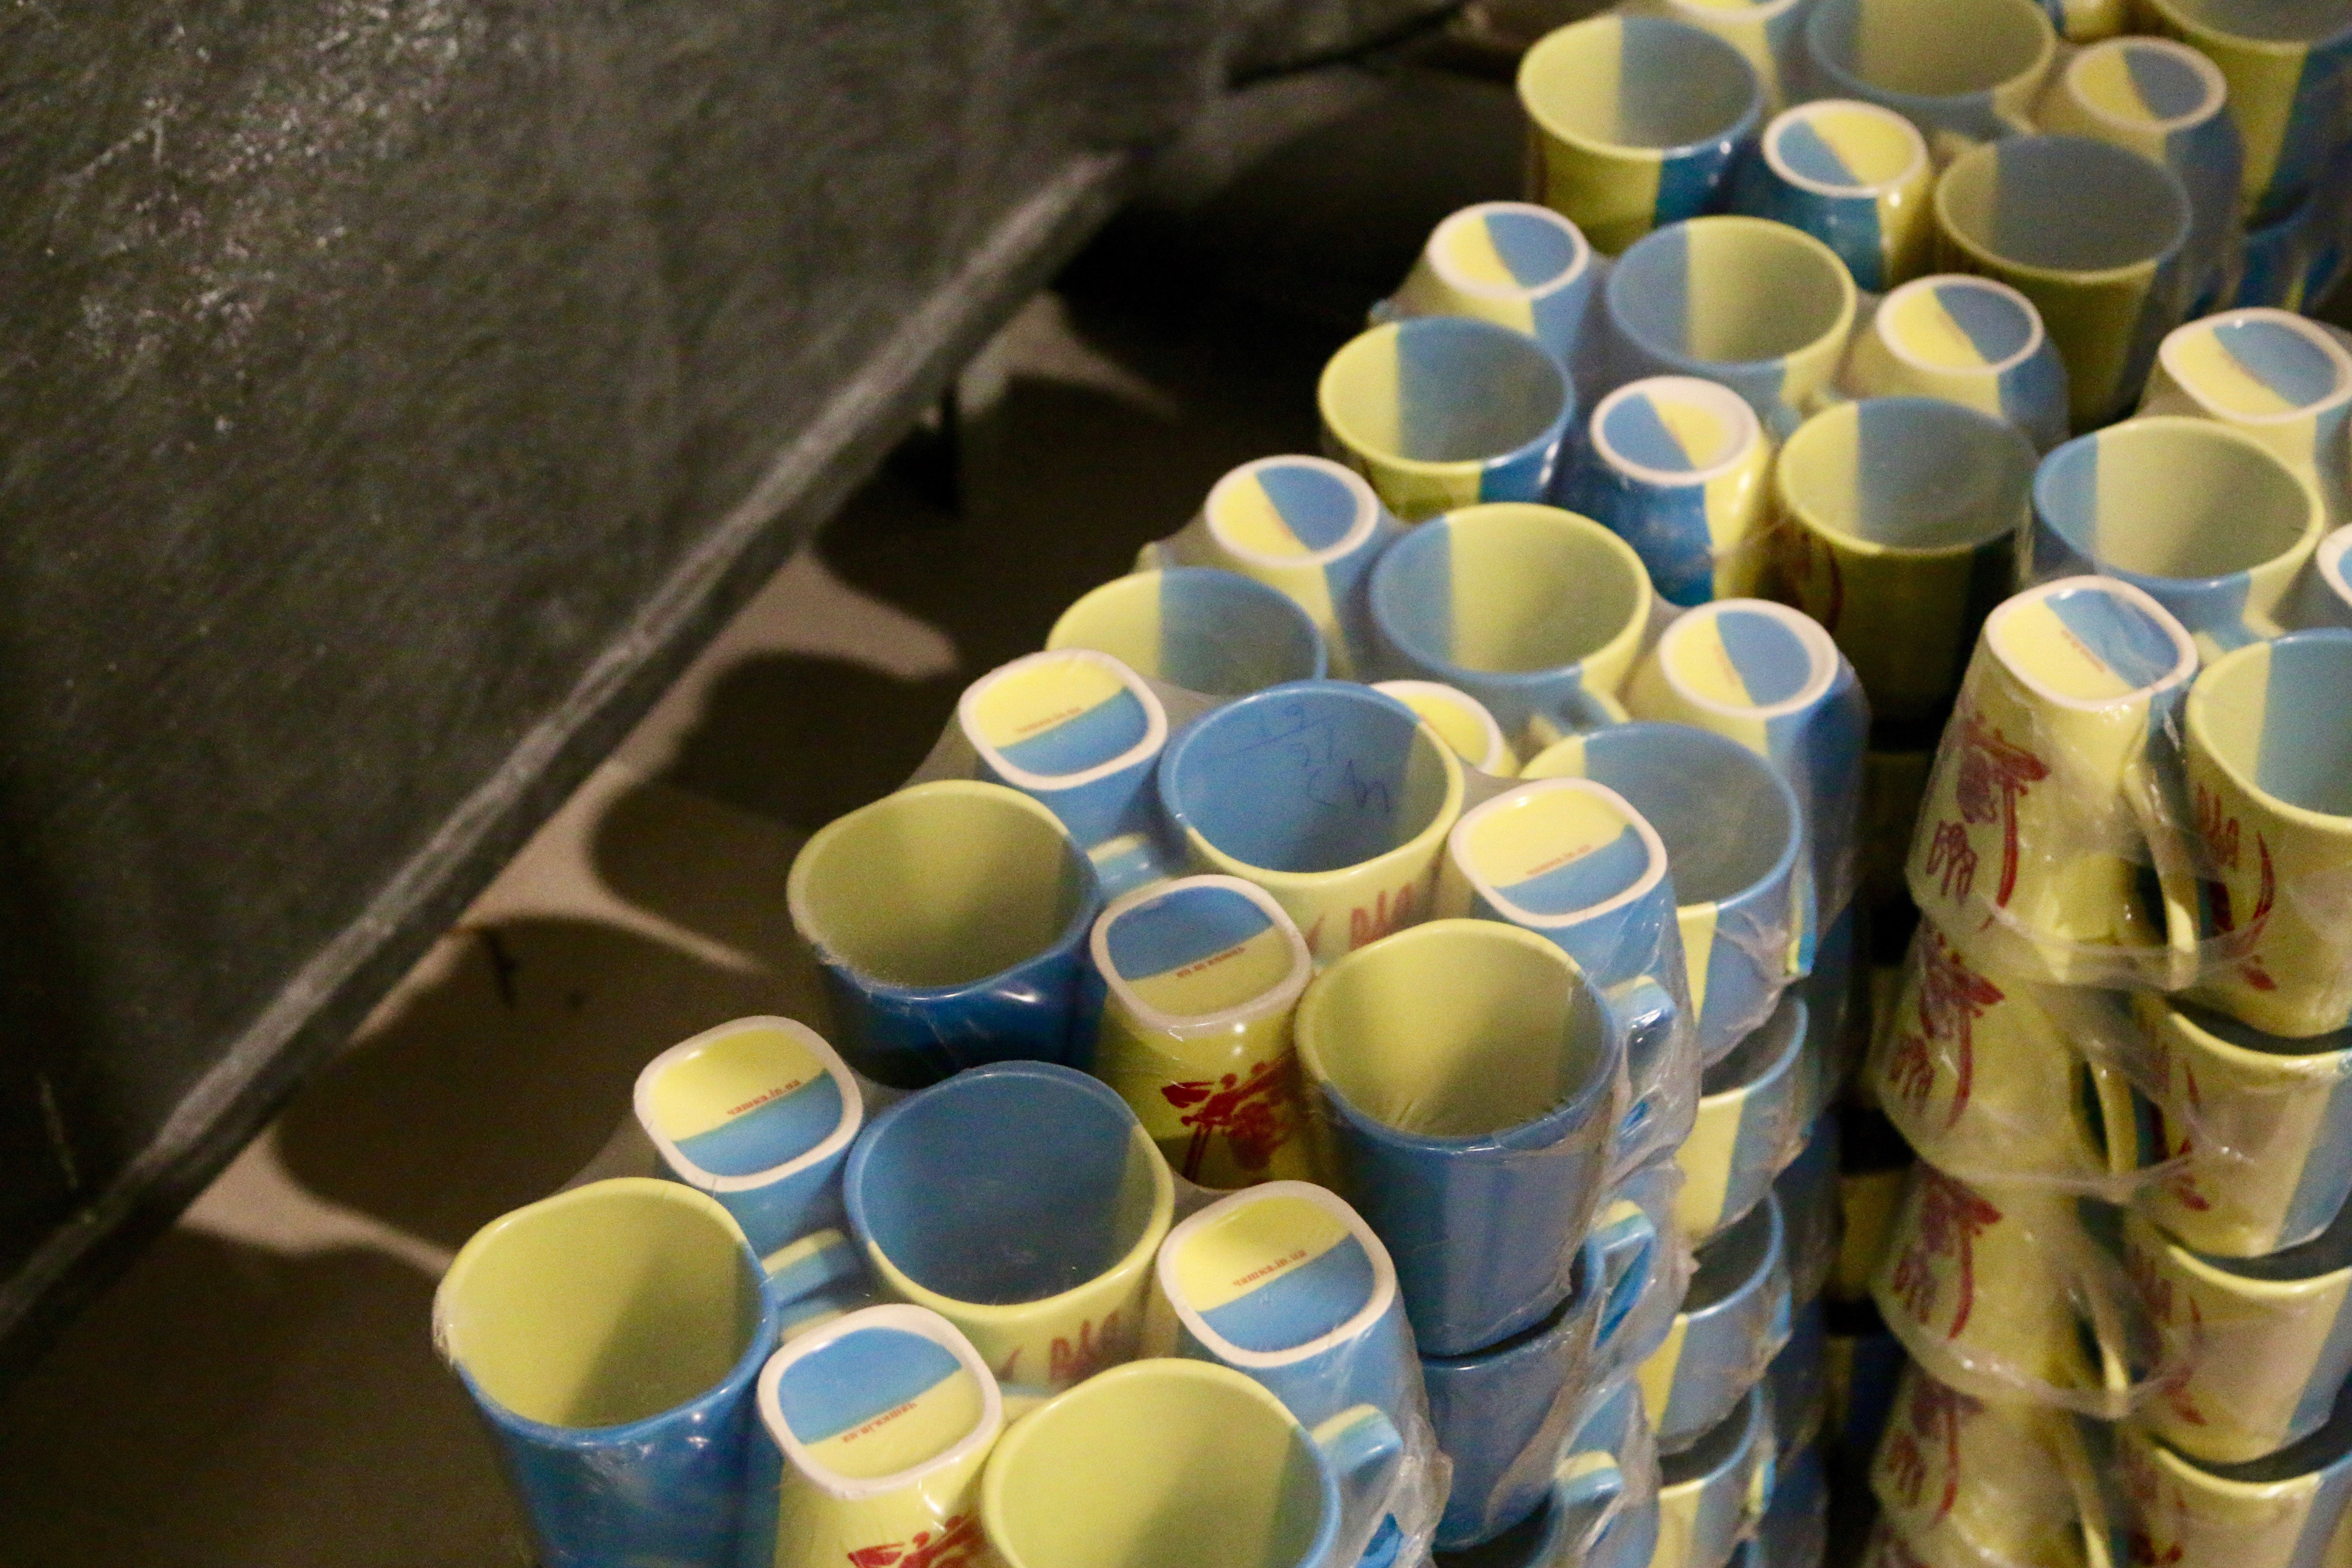 Olexandr Ivanovich Poligenko's blue and yellow coffee mugs—Ukraine's national colors—have become ubiquitous throughout the war zone.